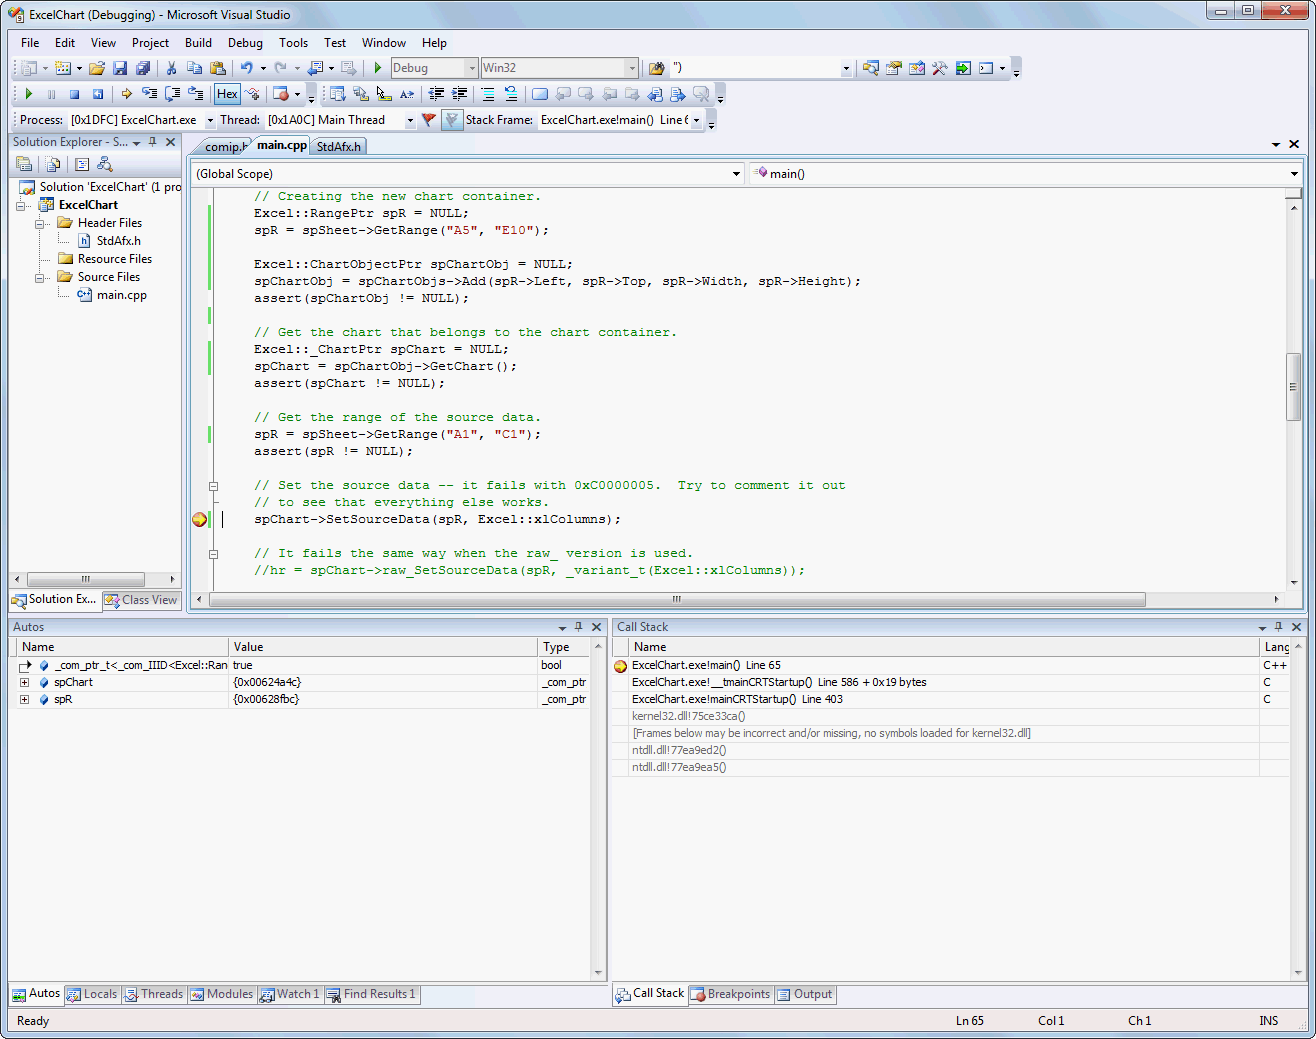 Why this single command causes exception? (Excel 2007